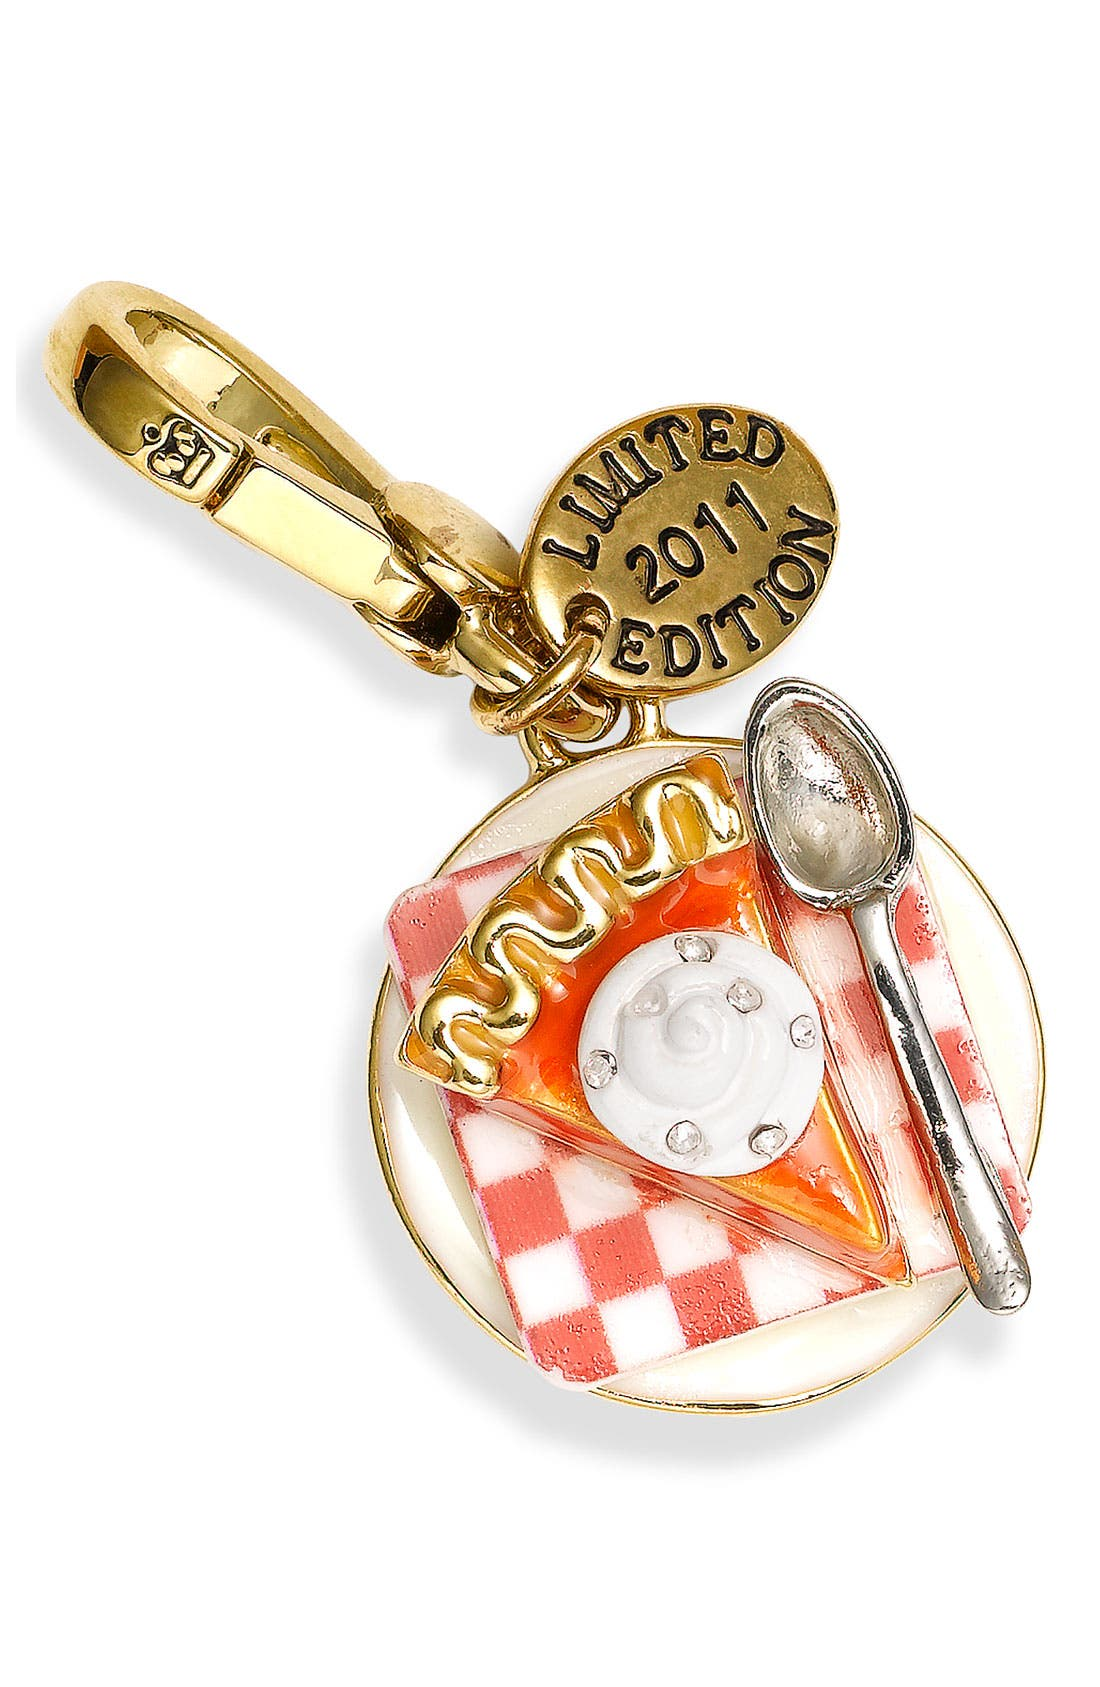 Main Image - Juicy Couture Pumpkin Pie Charm (Limited Edition)